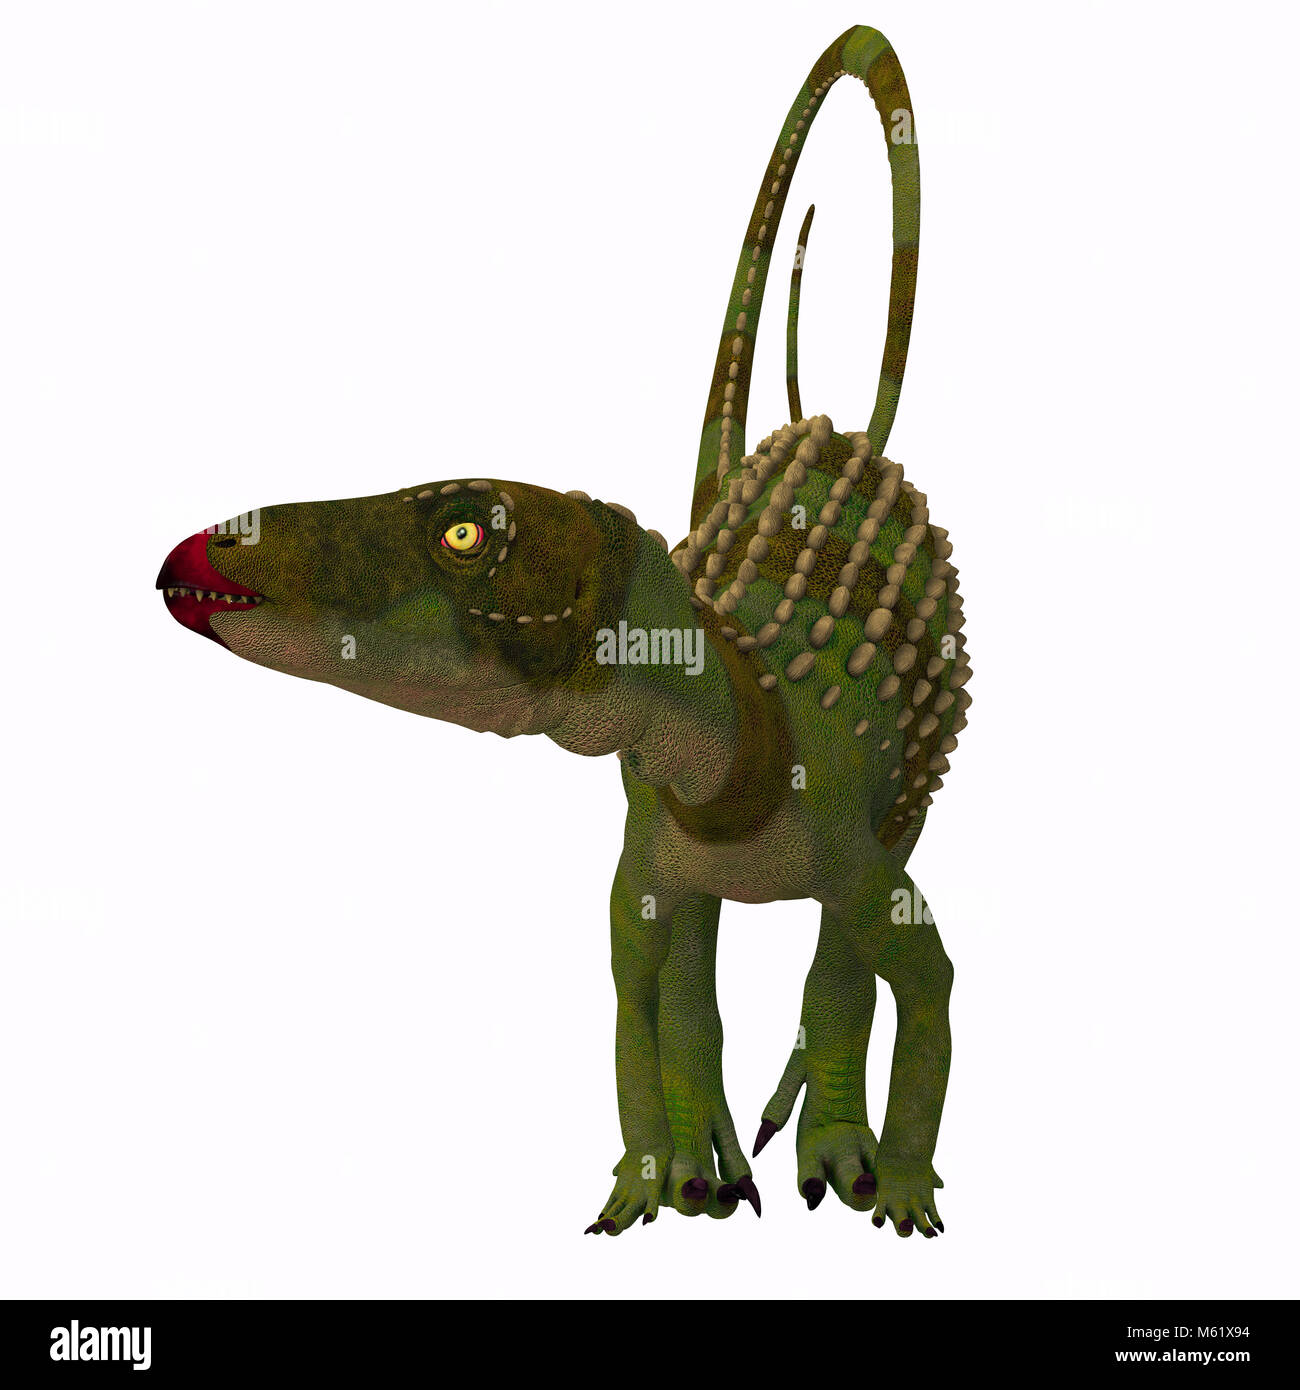 Scutellosaurus was an armored herbivore dinosaur that lived in Arizona, USA during the Jurassic Period. - Stock Image